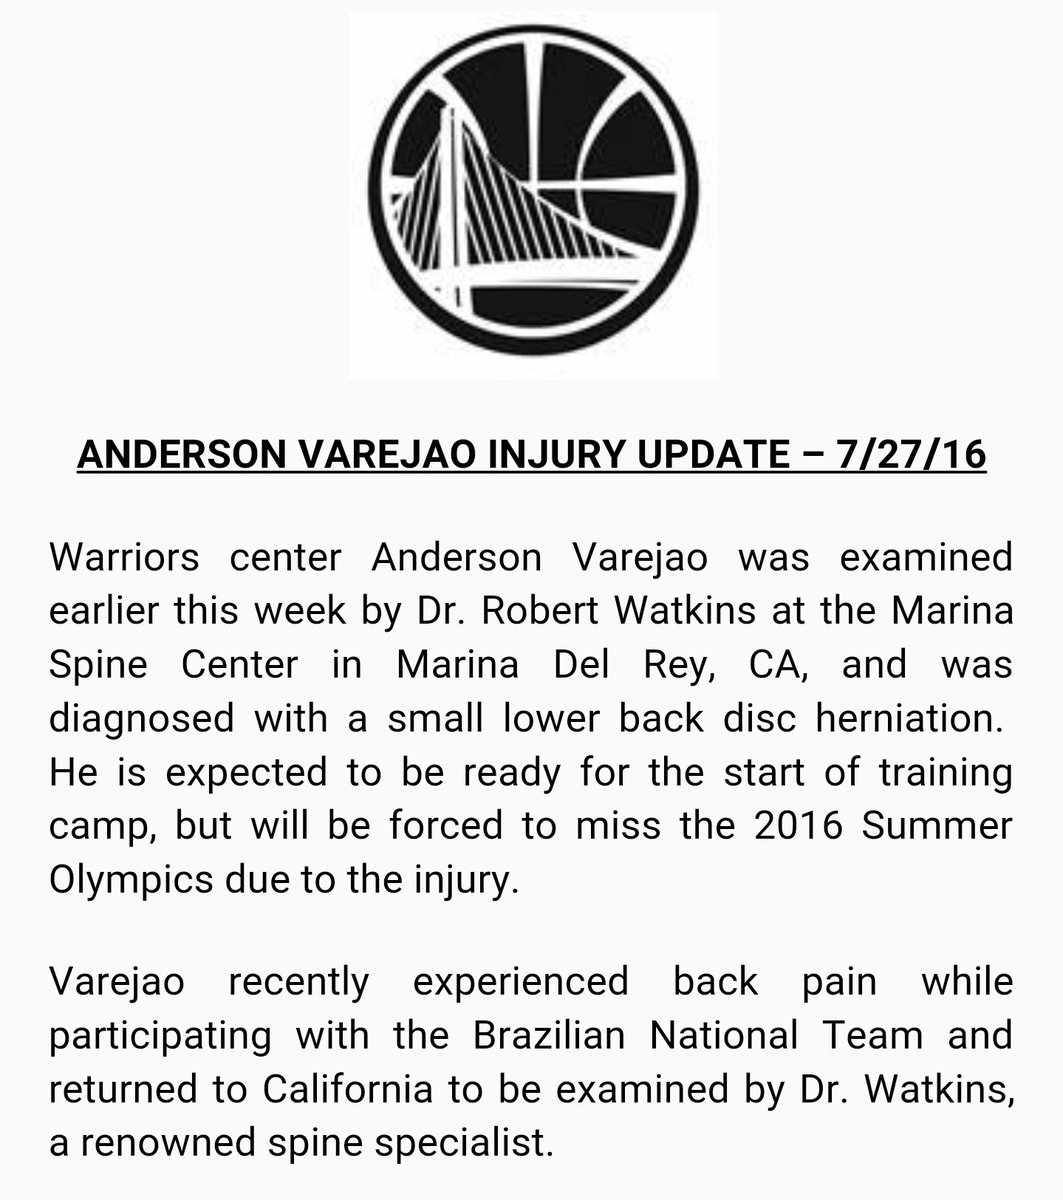 Warriors center Anderson Varejao to miss 2016 Summer Olympics due to back injury. Full update below